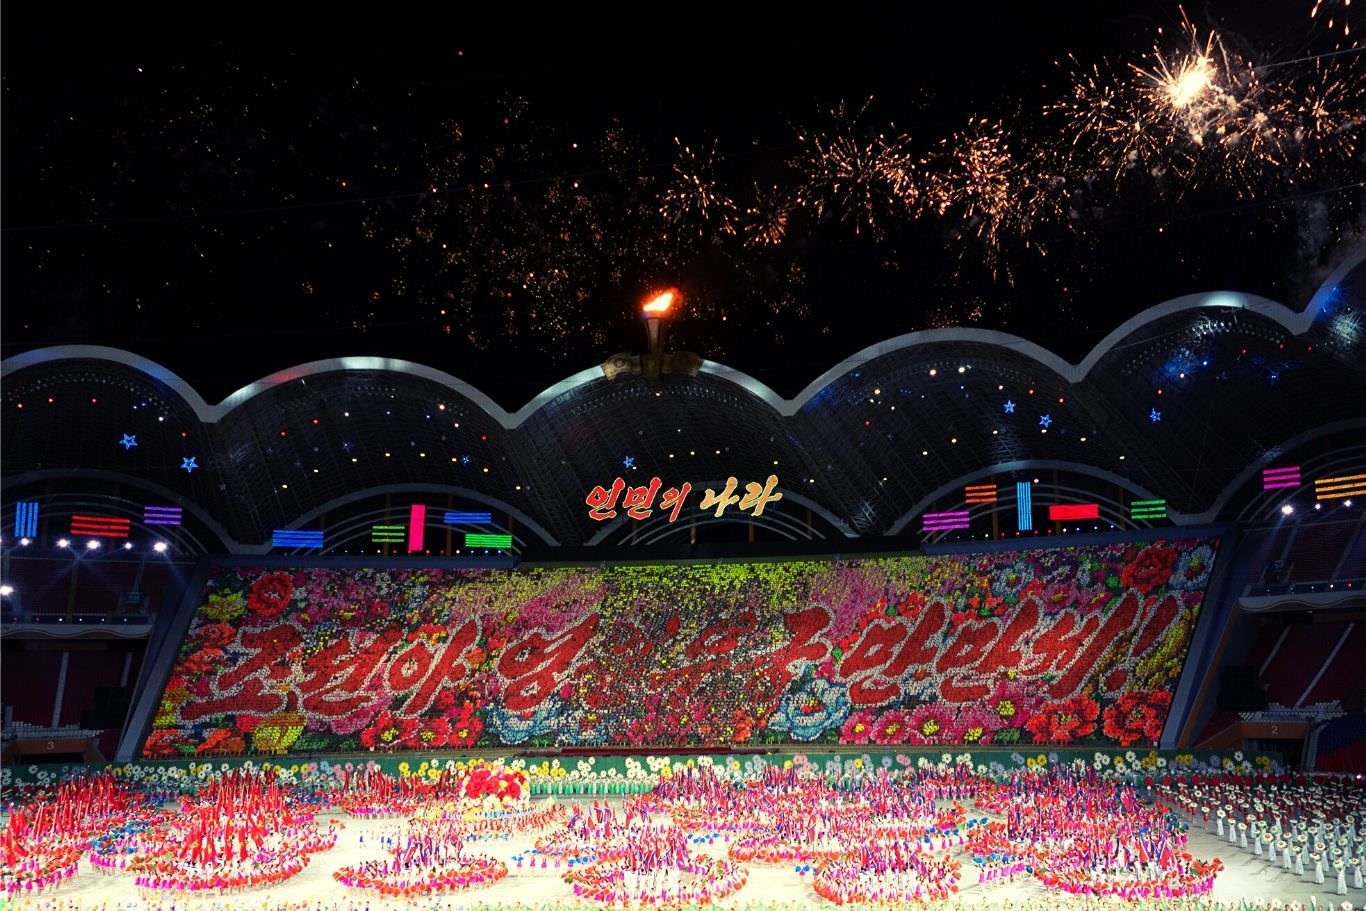 Mass Games finale, May Day Stadium, North Korea aka DPRK. Tour arranged by KTG Tours